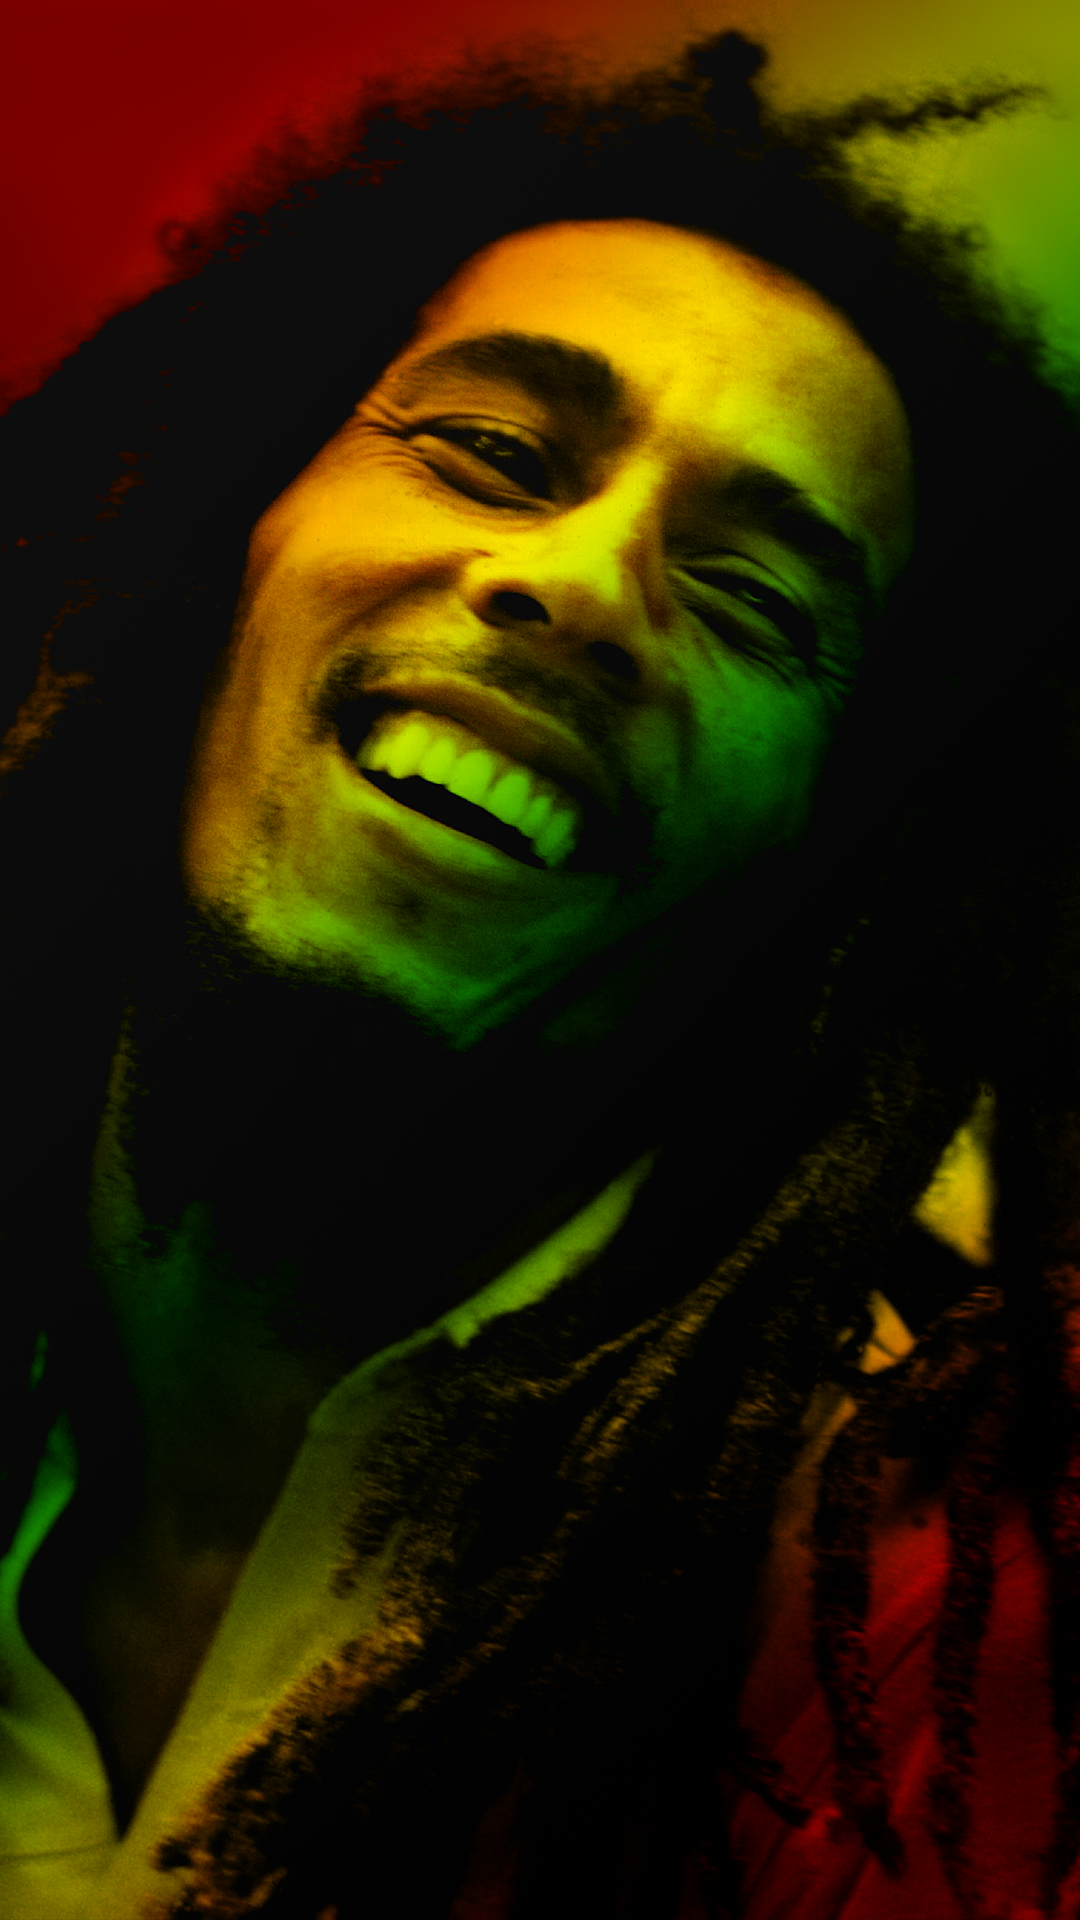 Download our hd bob marley wallpaper for android phones 0339 - Rasta bob live wallpaper free download ...